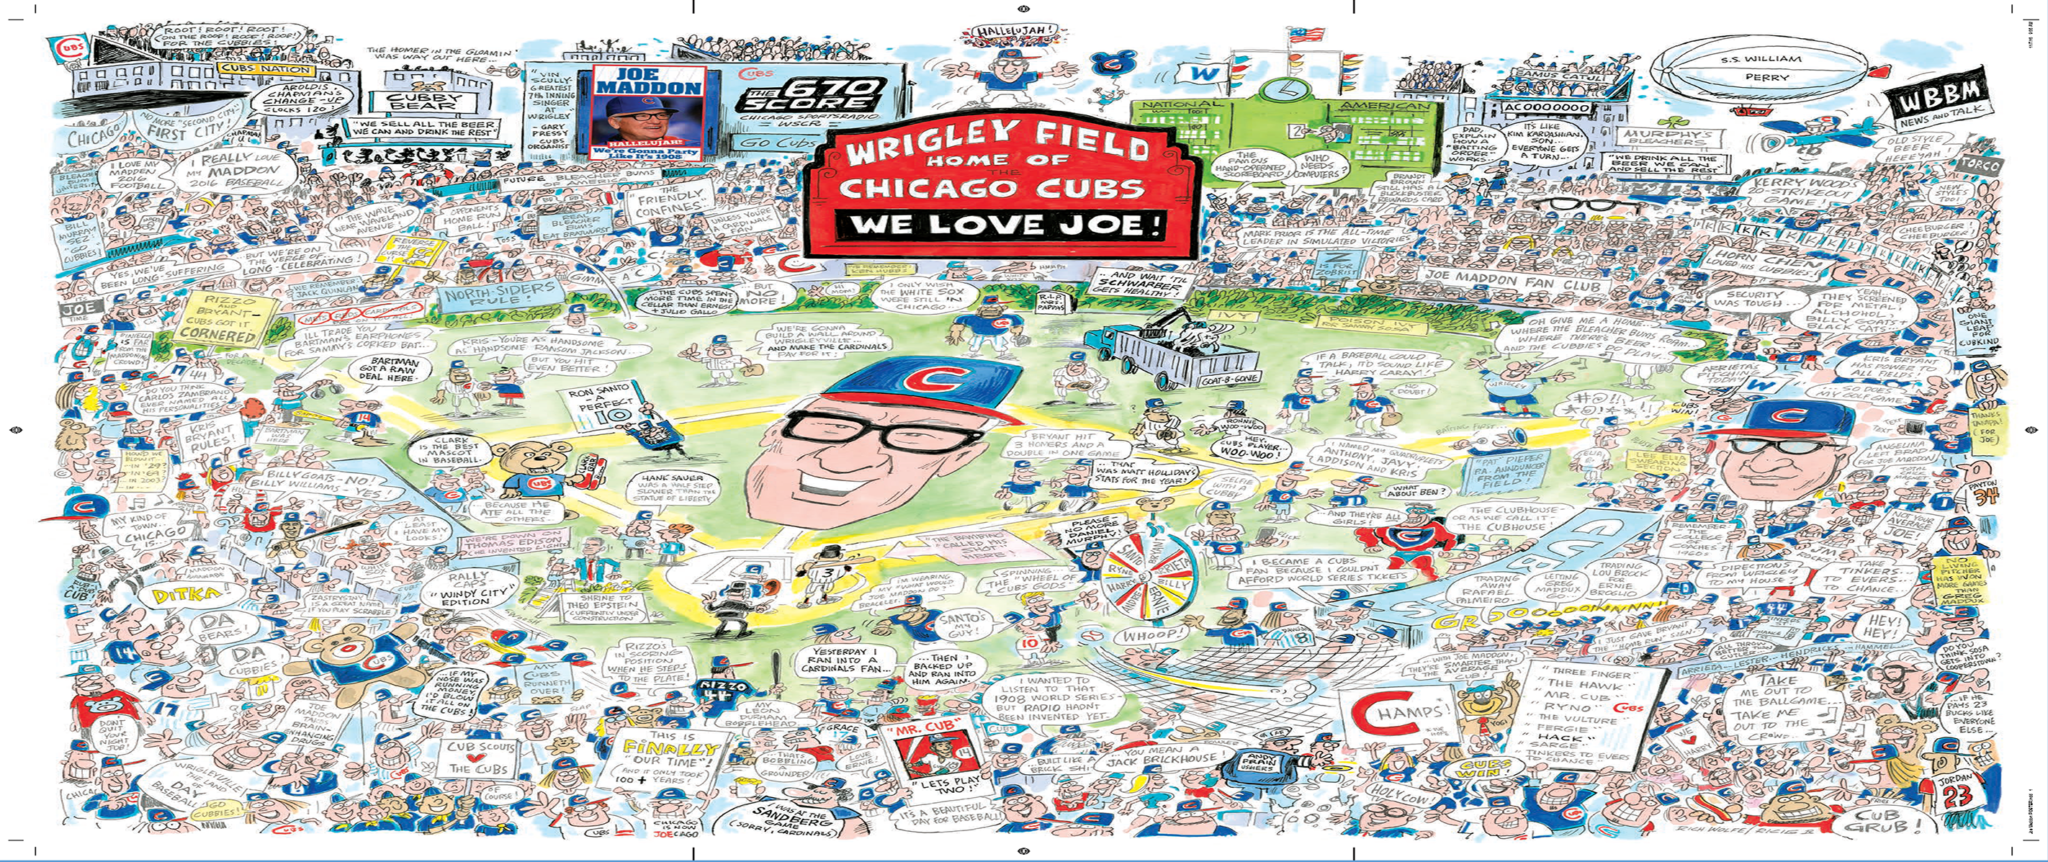 CUBS Search Results Special Olympics Illinois - Chicago map showing wrigley field